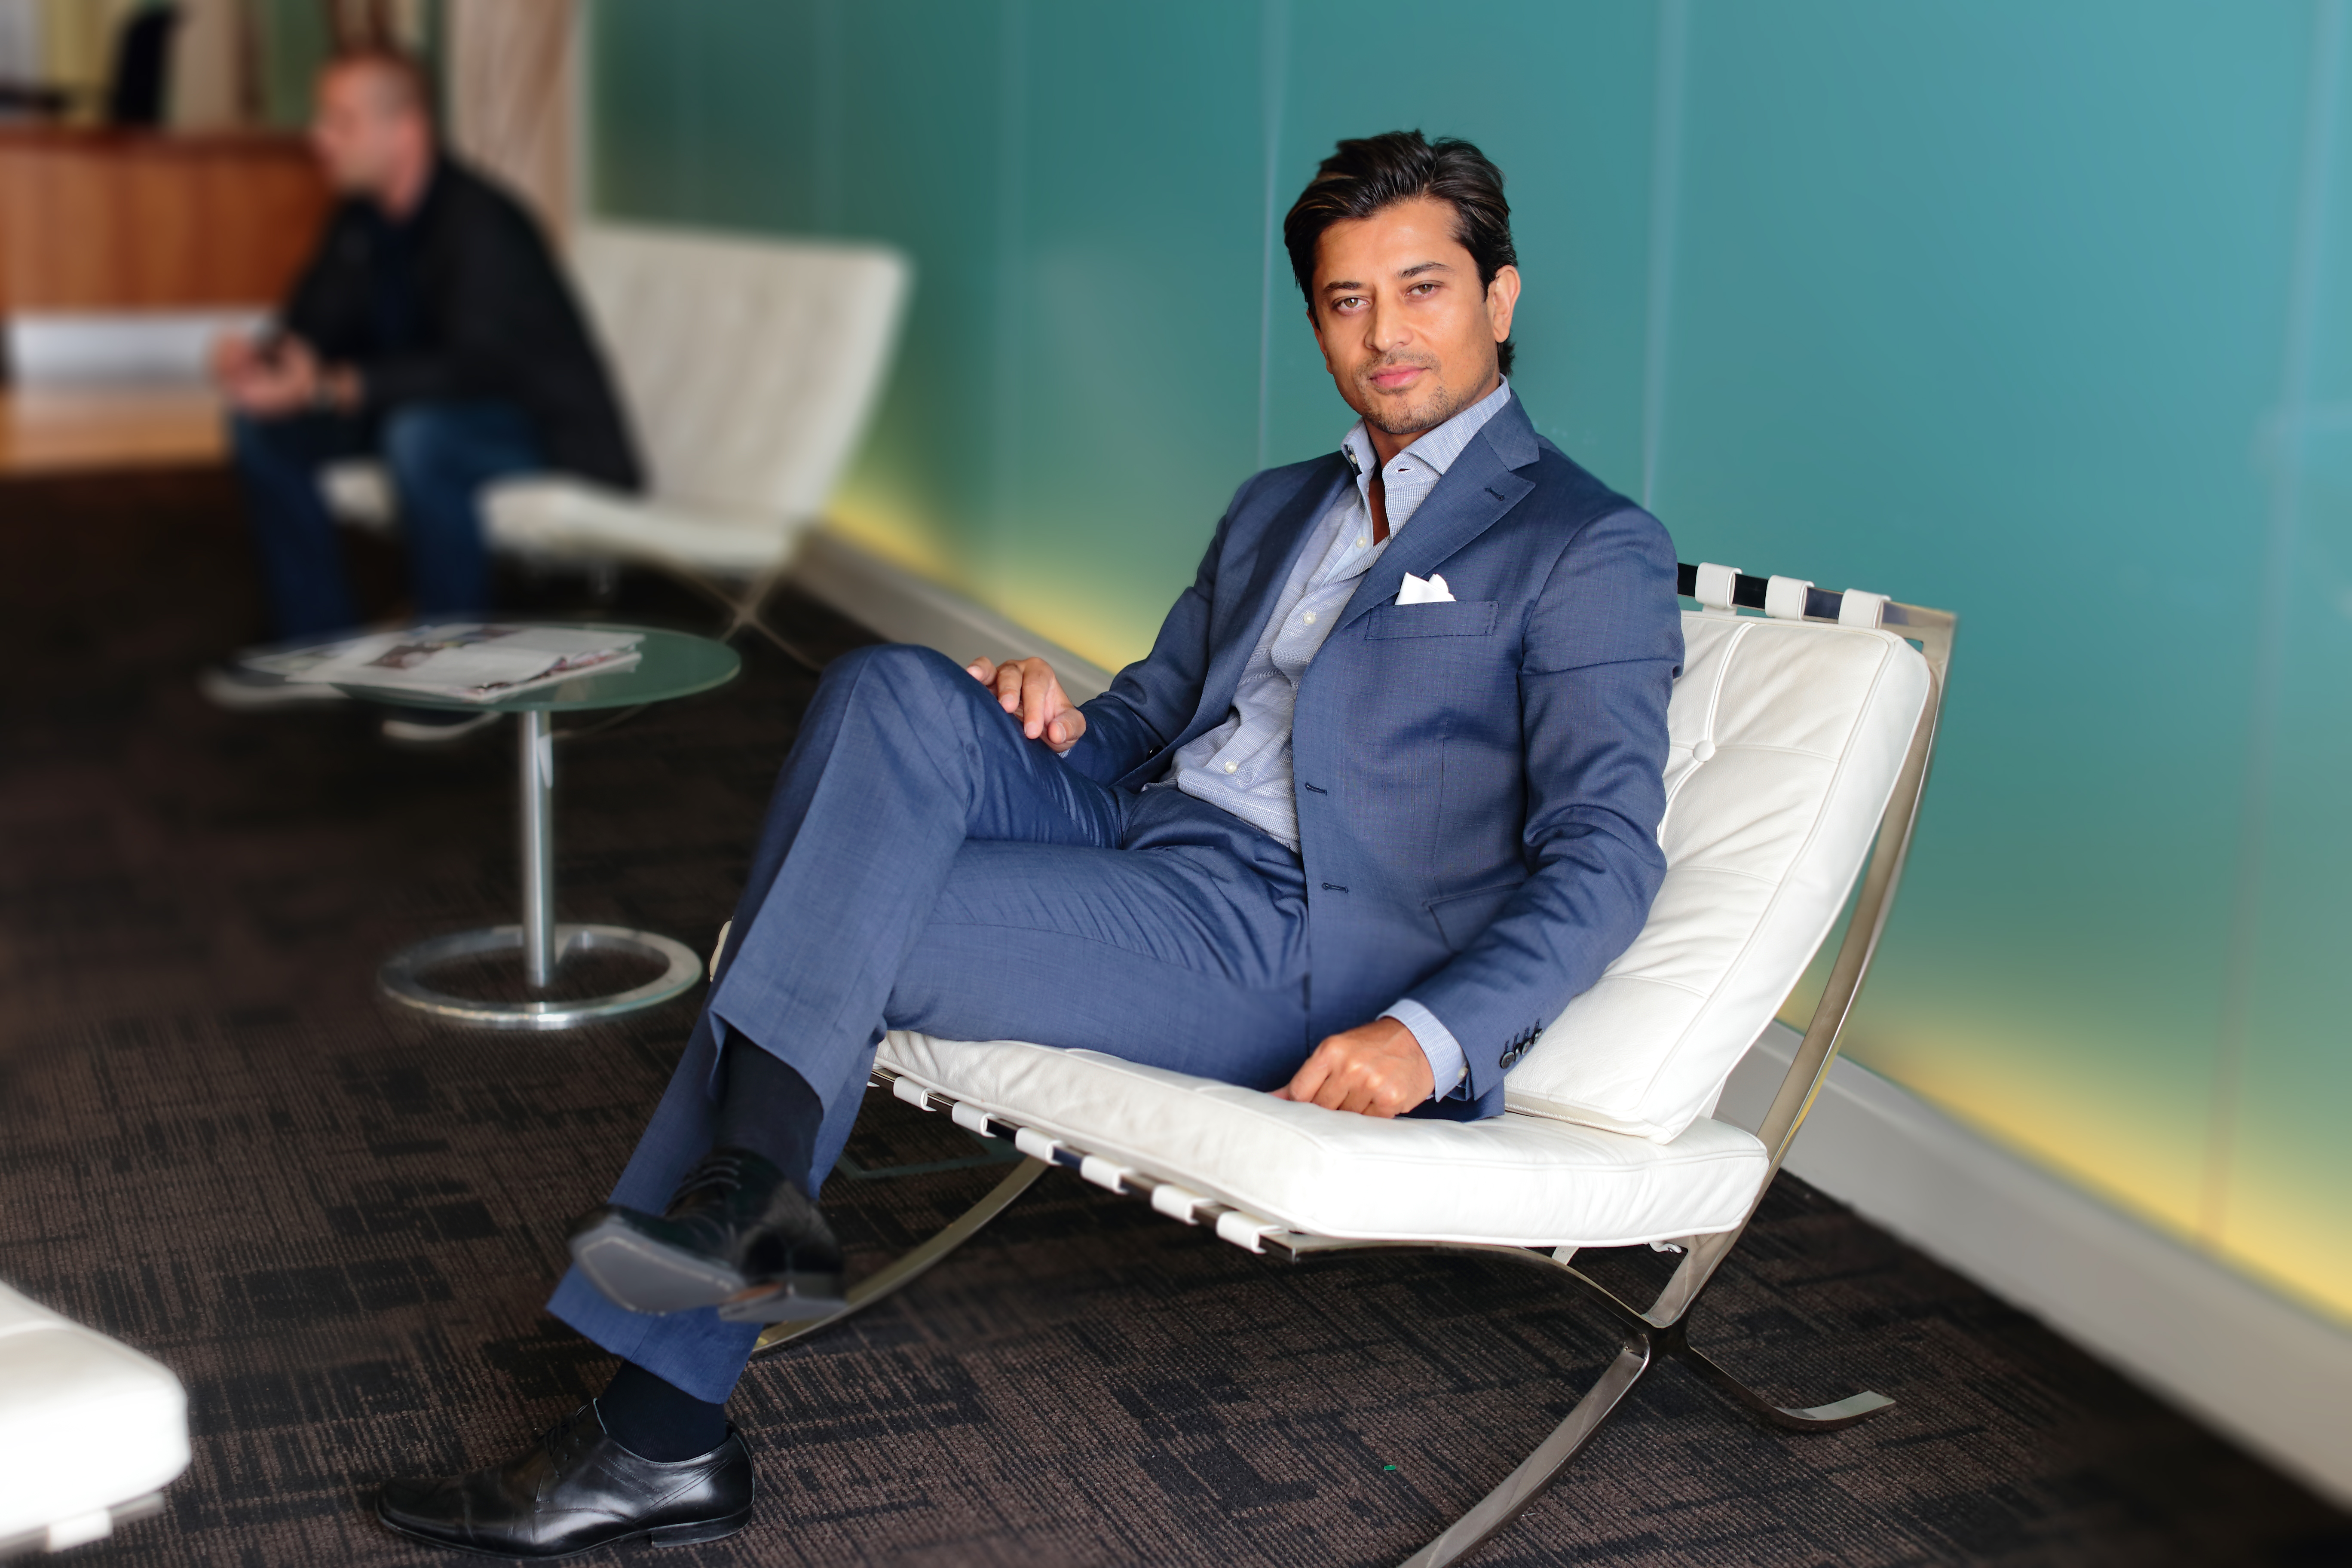 Syed Ahmed- Get blown away by his business